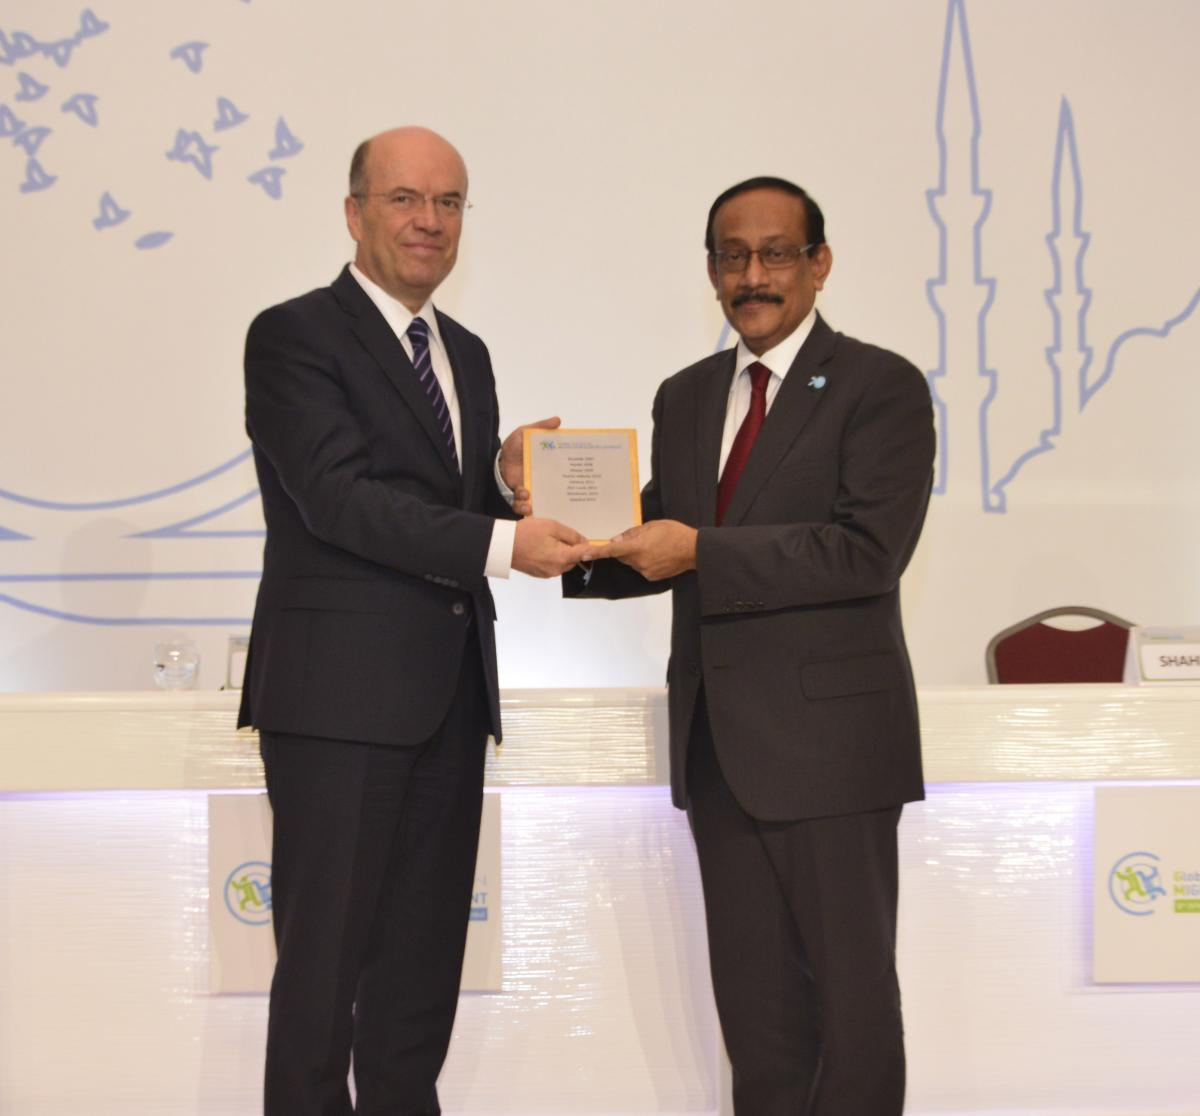 GFMD Chairmanship hand-over